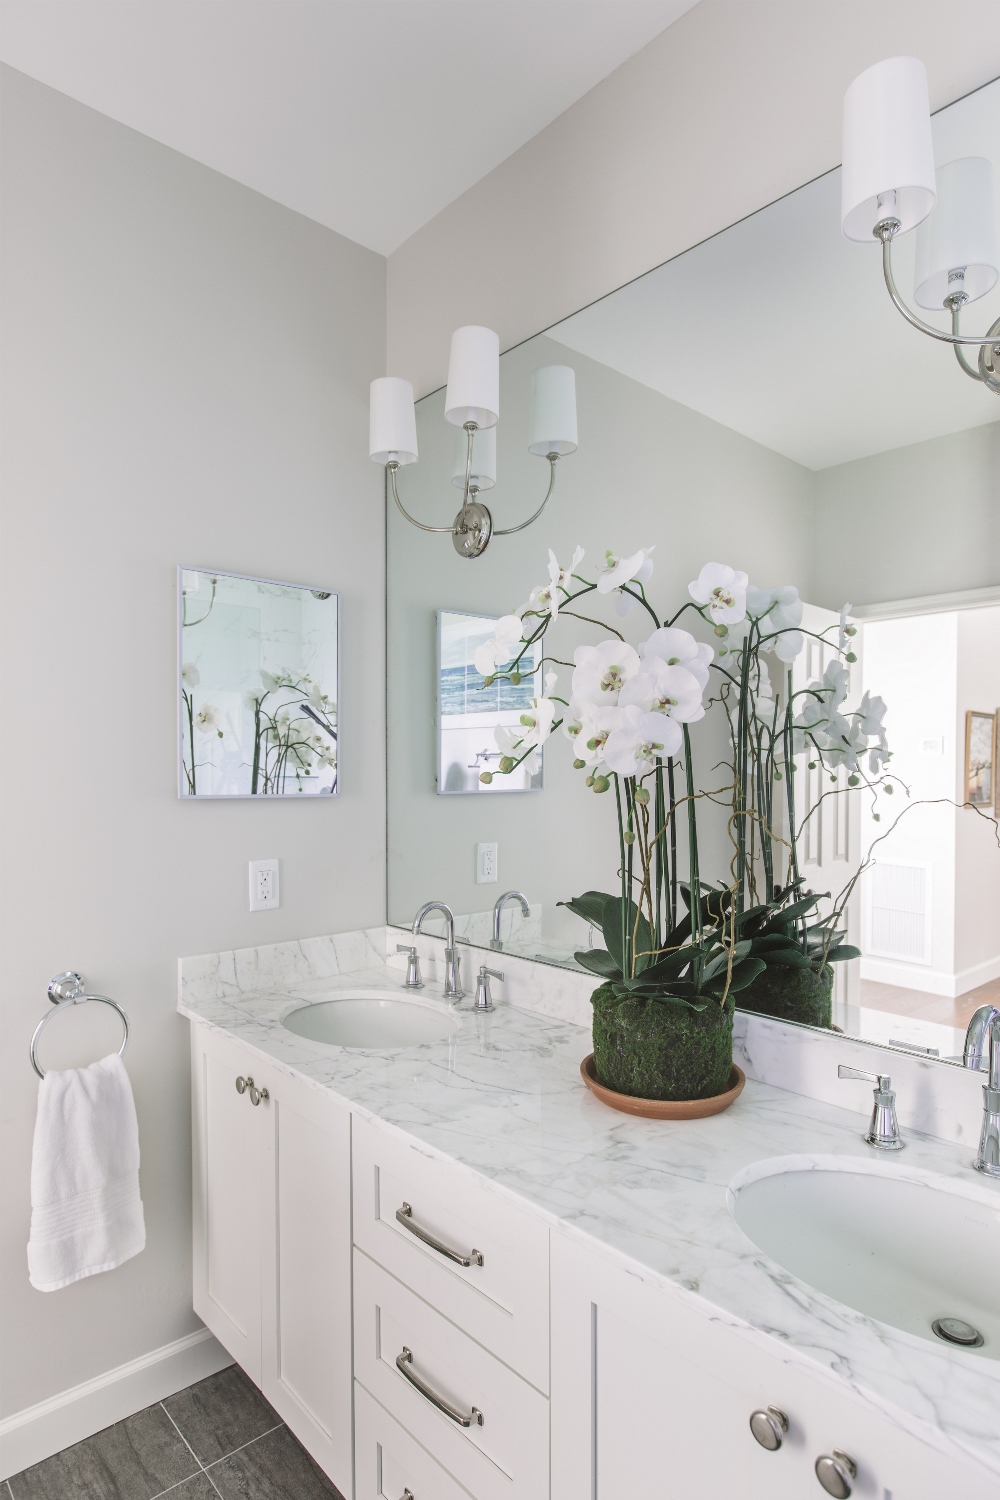 Bathroom Renovation, Oceanwalk, Atlantic Beach, FL | Cornelius Construction Company © Cristina Danielle Photography